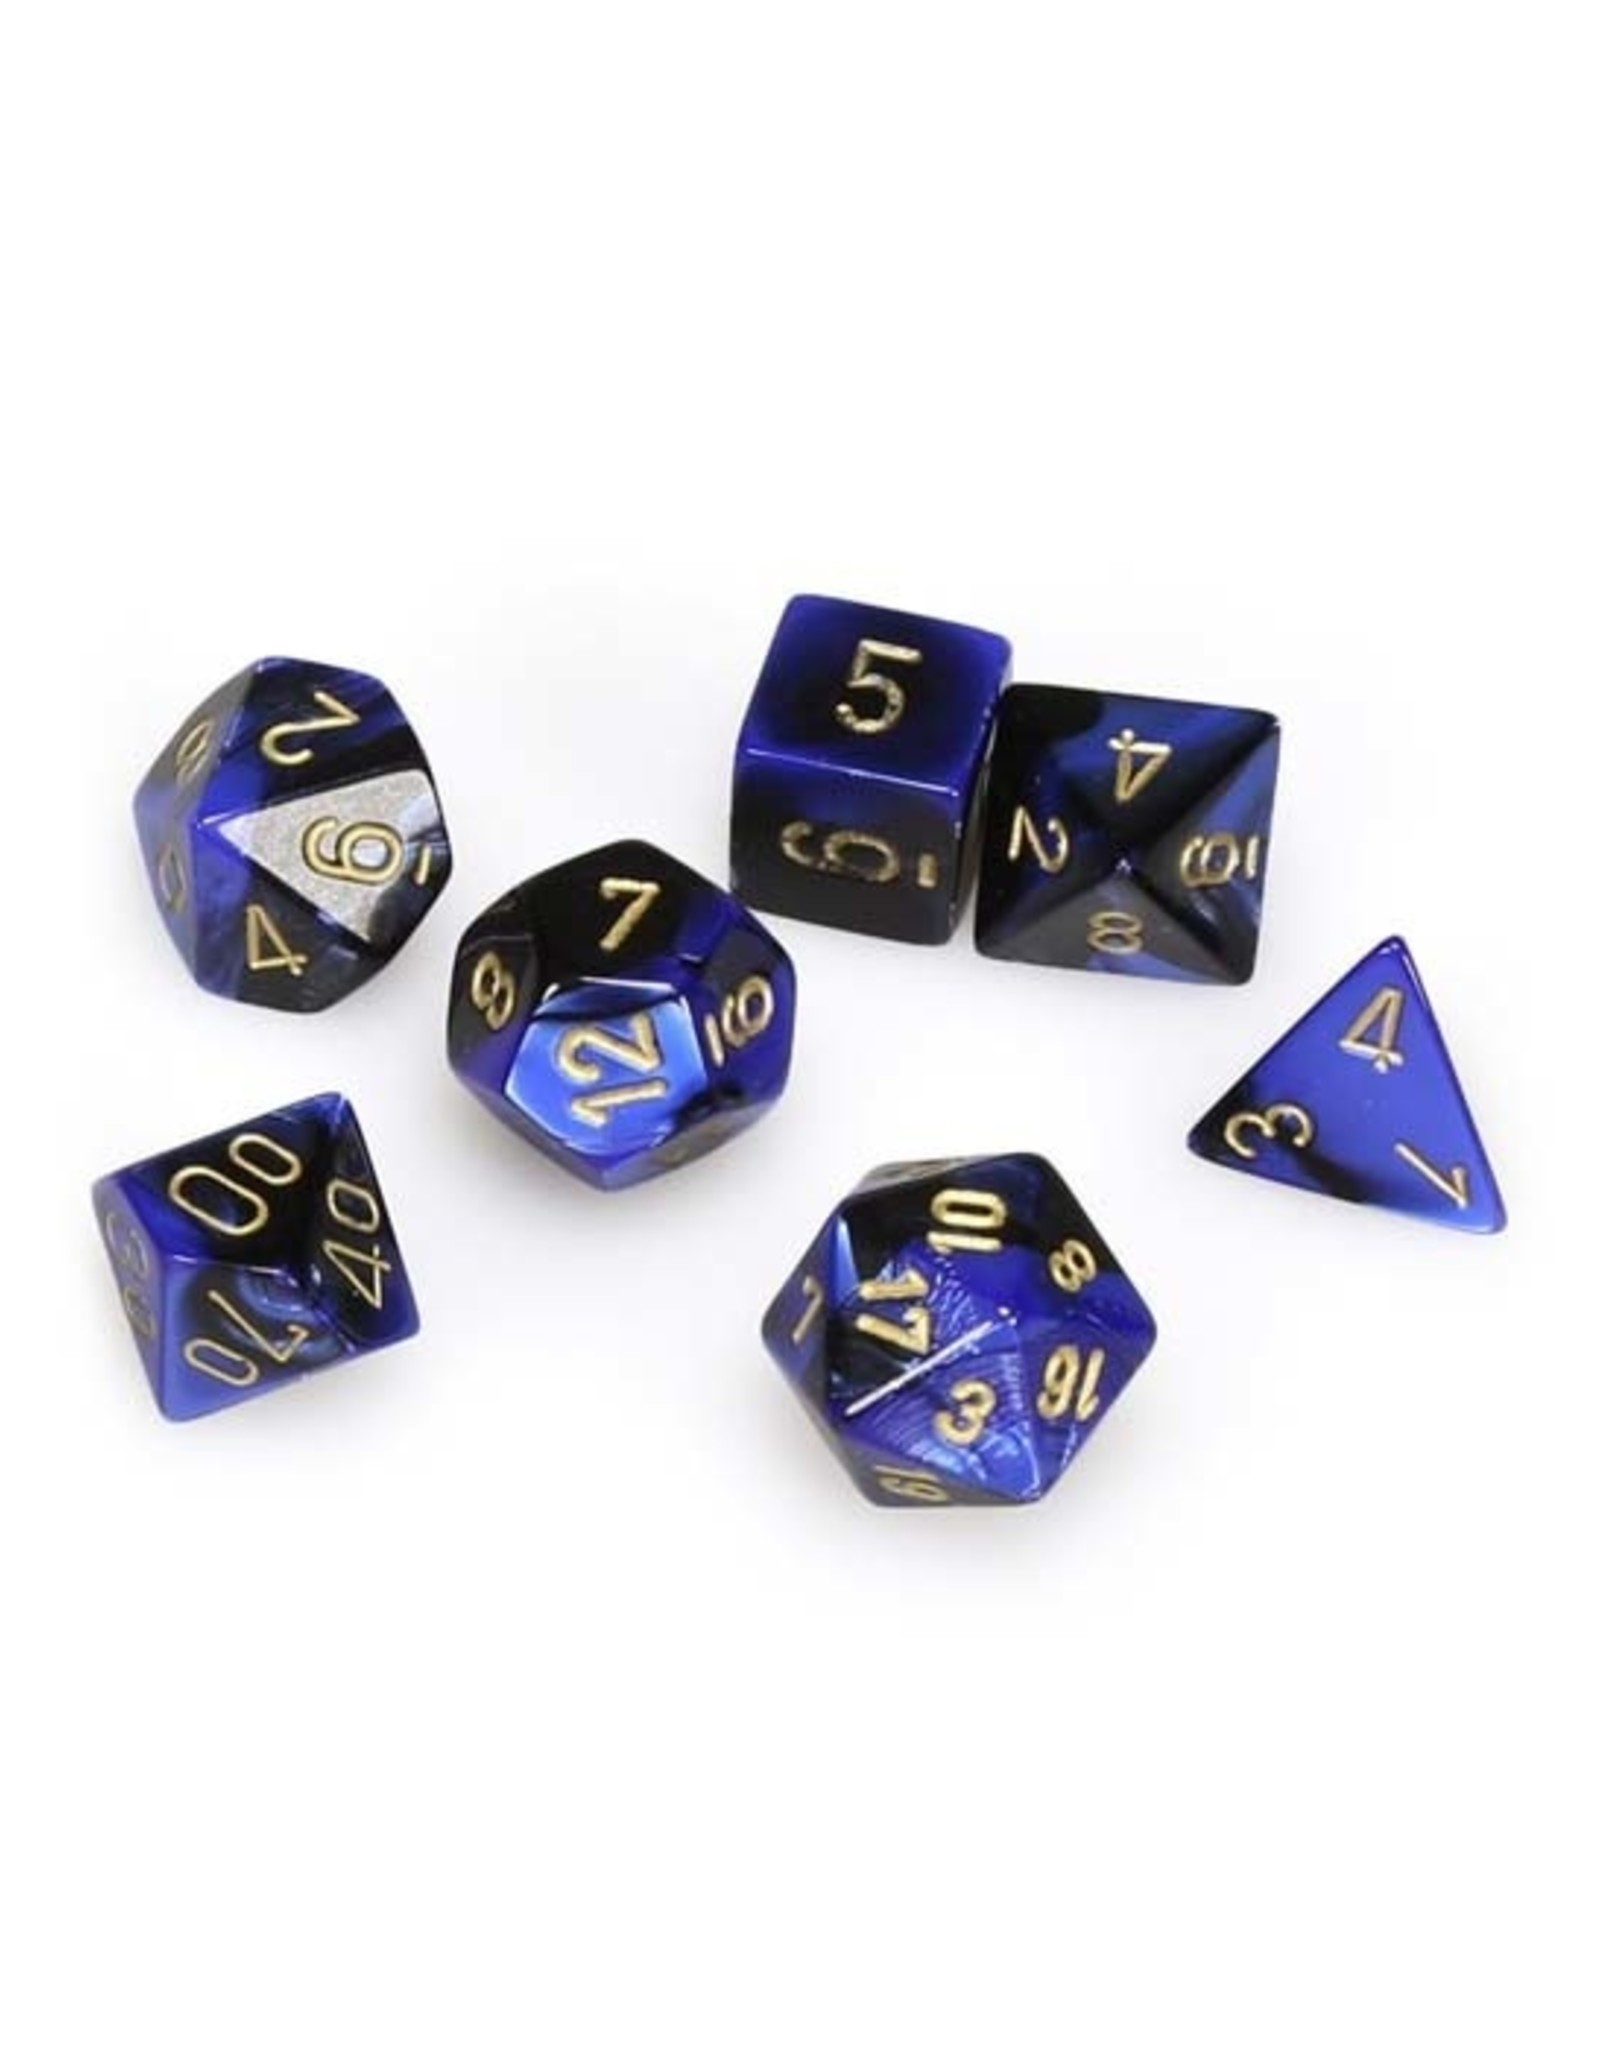 Chessex Chessex: Poly 7 Set - Gemini - Black-Blue w/ Gold